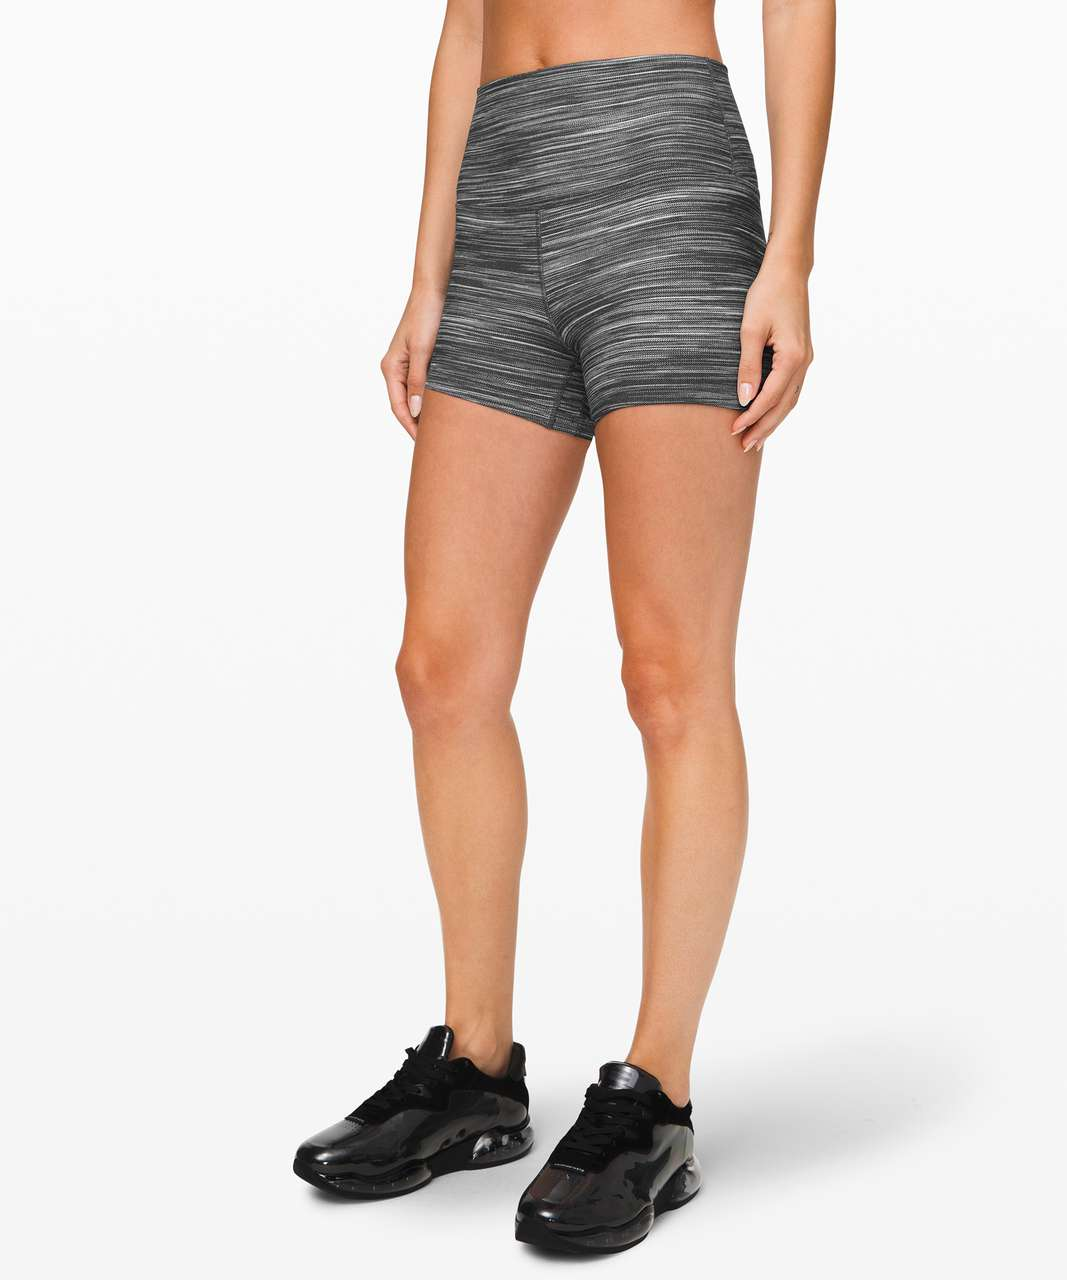 "Lululemon Align Short *4"" - Mini Space Dye Herringbone Heathered Black White / Black"